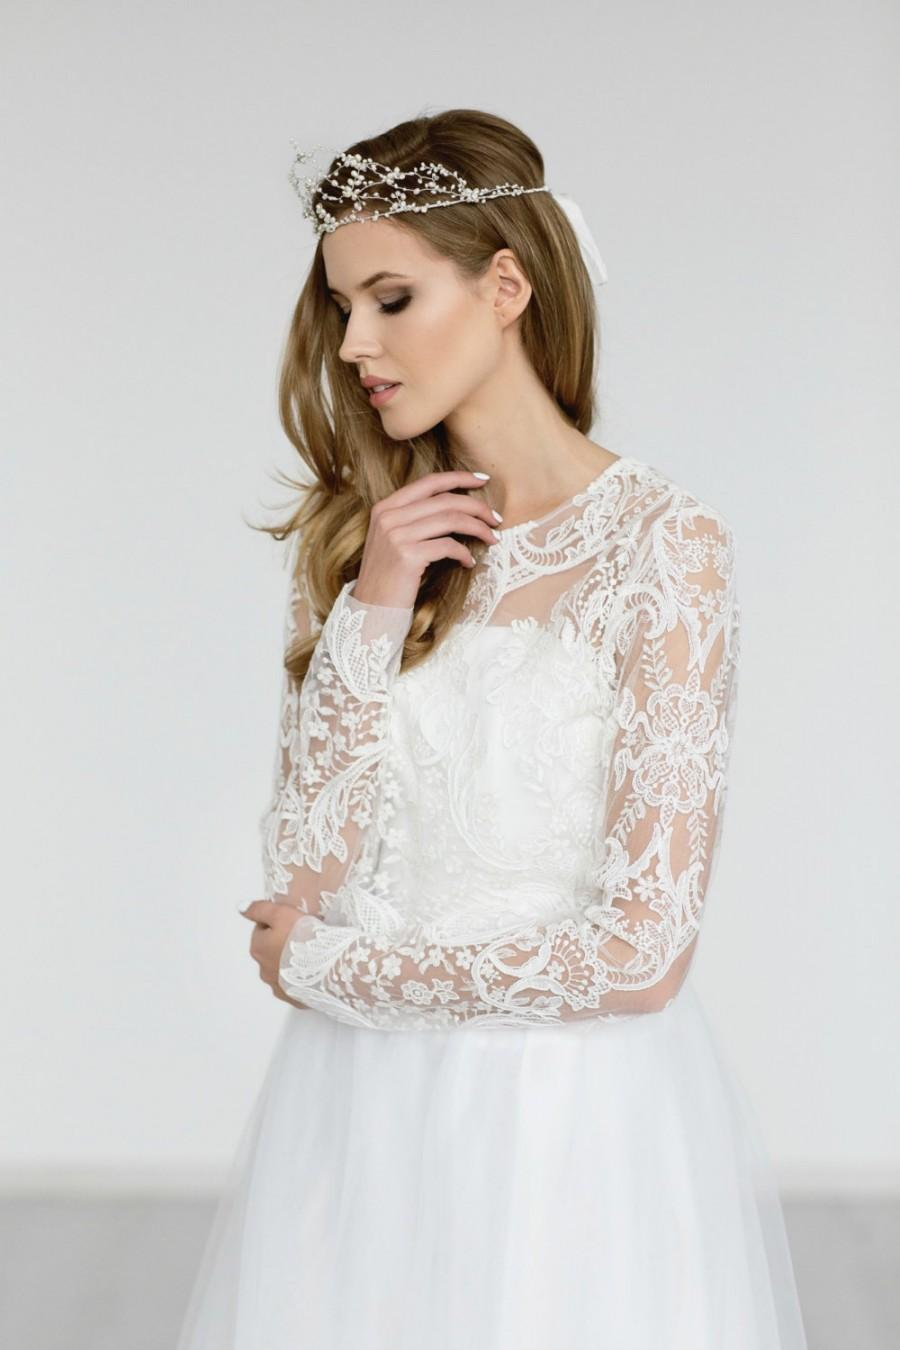 زفاف - Wedding Lace Top , Bridal Bolero ,Ivory  Lace Top , Back Button Lace Jacket ,Bridal Separates , Wedding Lace Cover Up ISABELLA